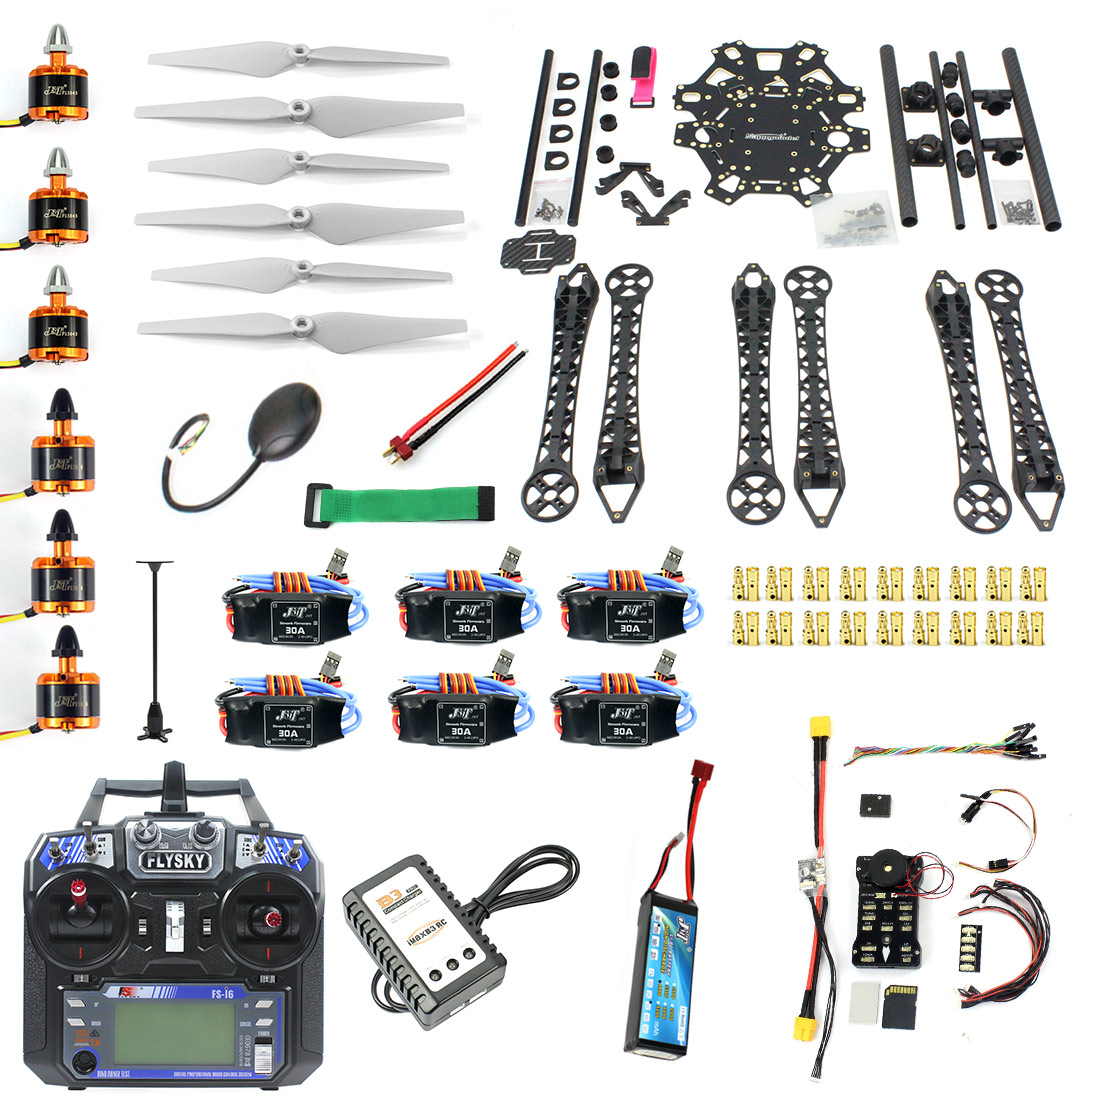 F08618-u Diy Fpv Drone Hexacopter 6-axle Aircraft Kit Hmf S550 Frame Pxi Px4 Flight Control 920kv Motor Gps Fs-i6 Transmitter